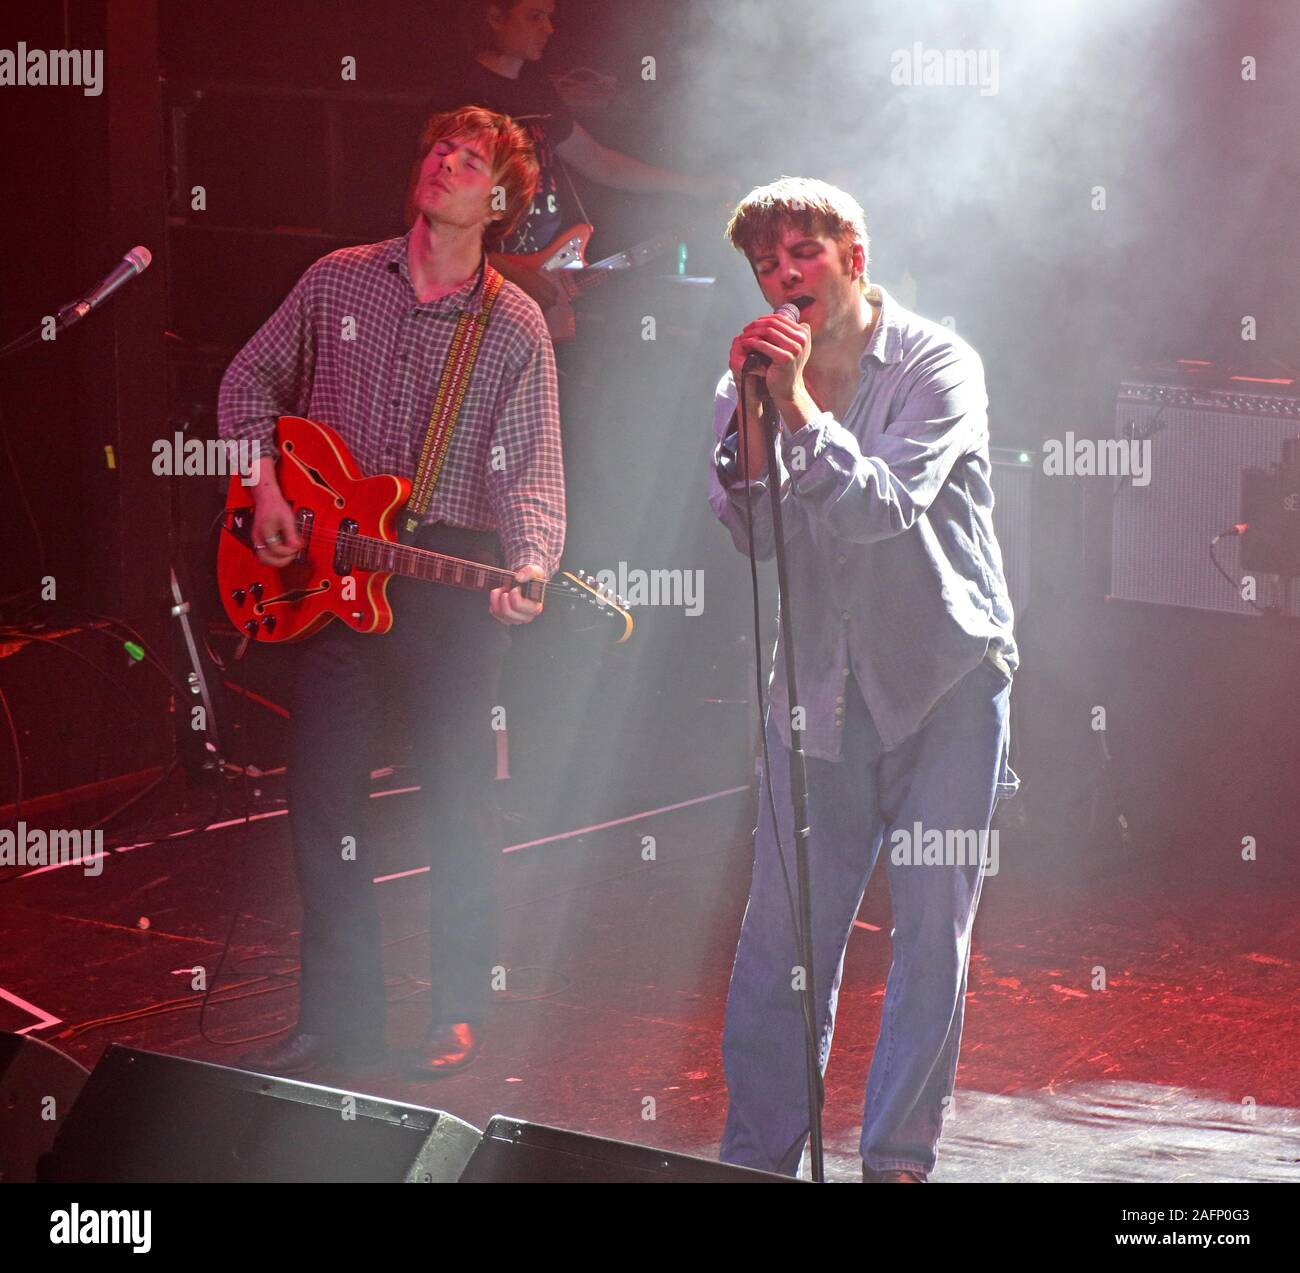 HotpixUK,@HotpixUK,GoTonySmith,Birmingham,UK,England,West Midlands,DC,Dublin,Dublin City,B5 6DY,B5,Live on stage Birmingham O2 Academy Institute,Live on stage,live,stage,music,Academy,Institute,Digbeth,25th November,2019,post-punk,punk,performing,performing at,Carlos OConnell,Conor Curley,Conor Deegan,Grian Chatten,Tom Coll,tour,touring,2019 Tour,Fontaines DC Tour 2019,Fontaines D.C. Tour 2019